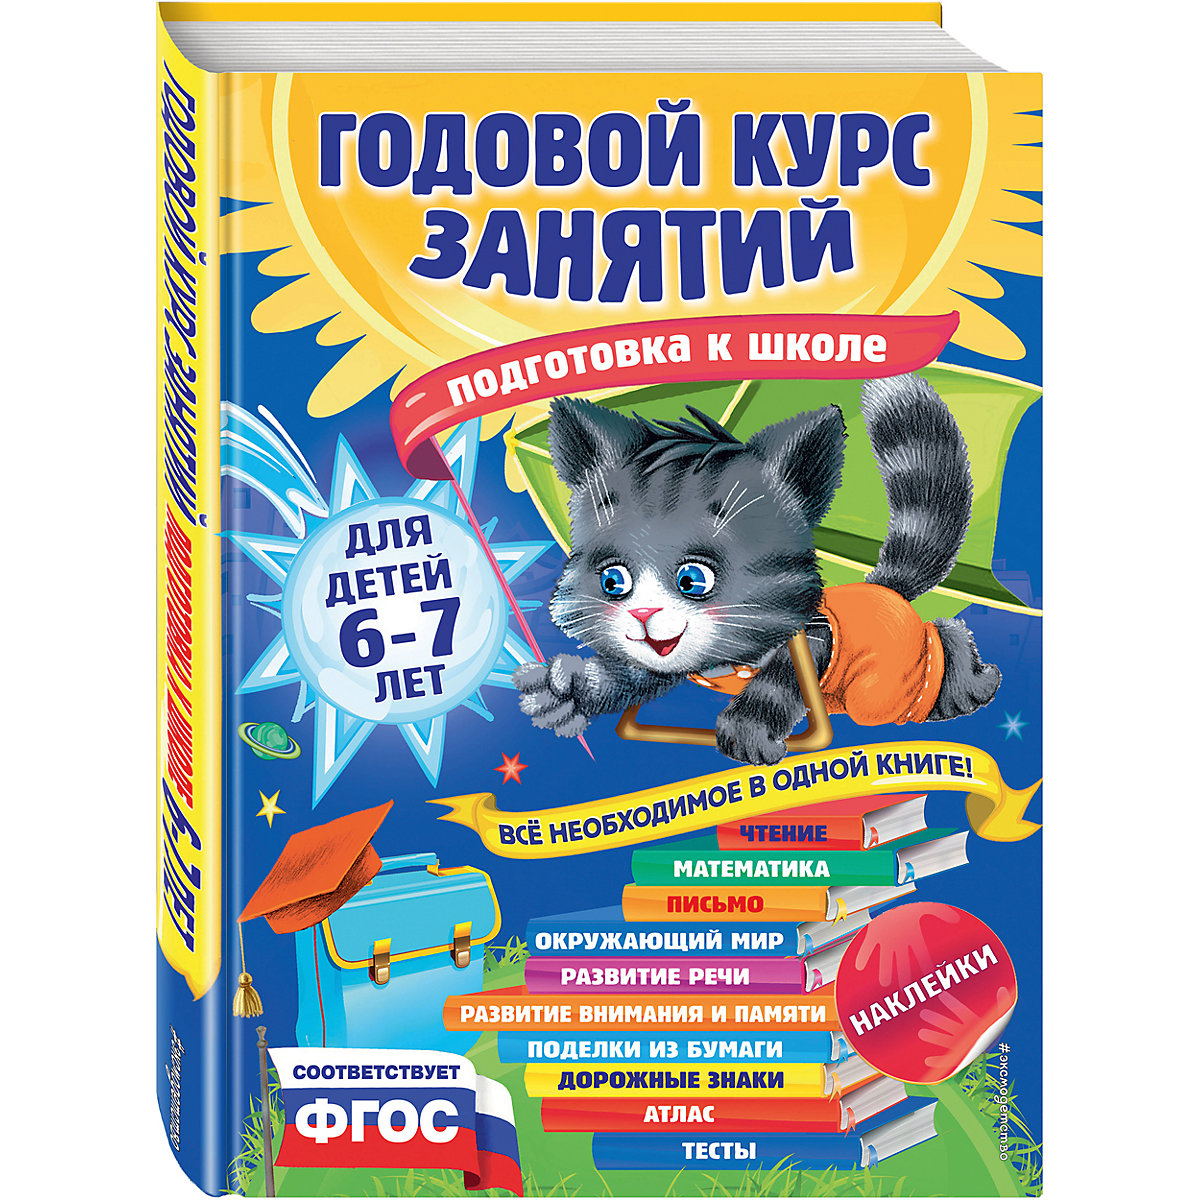 Books EKSMO 4753533 Children Education Encyclopedia Alphabet Dictionary Book For Baby MTpromo